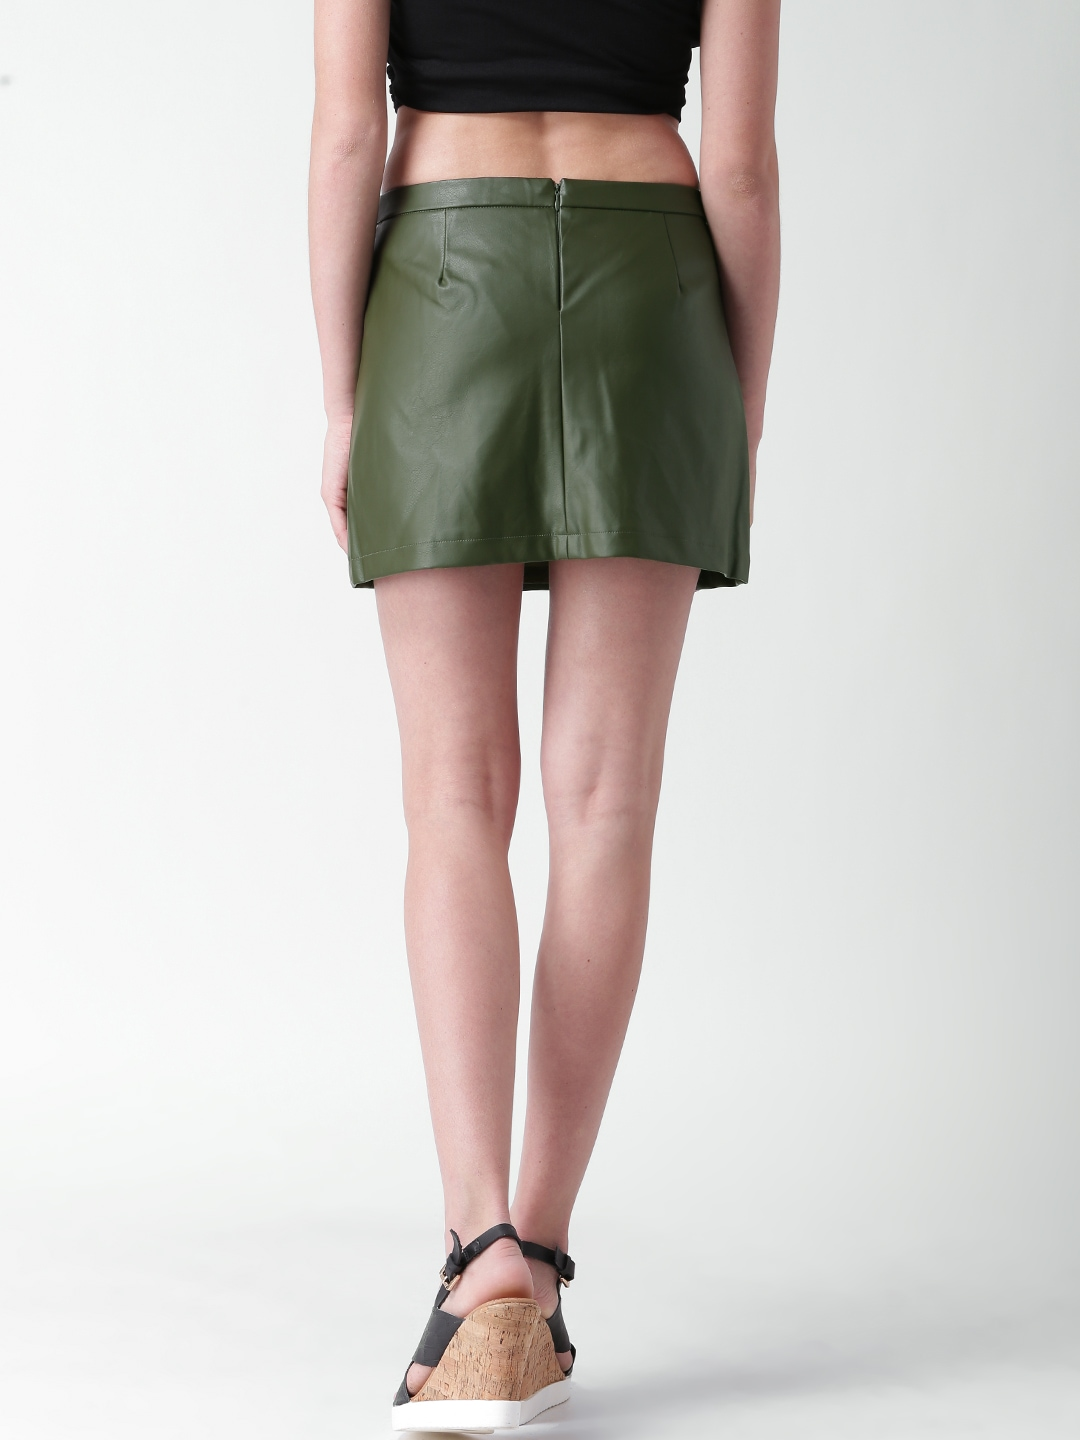 Buy FOREVER 21 Olive Green Mini Skirt - Skirts for Women | Myntra